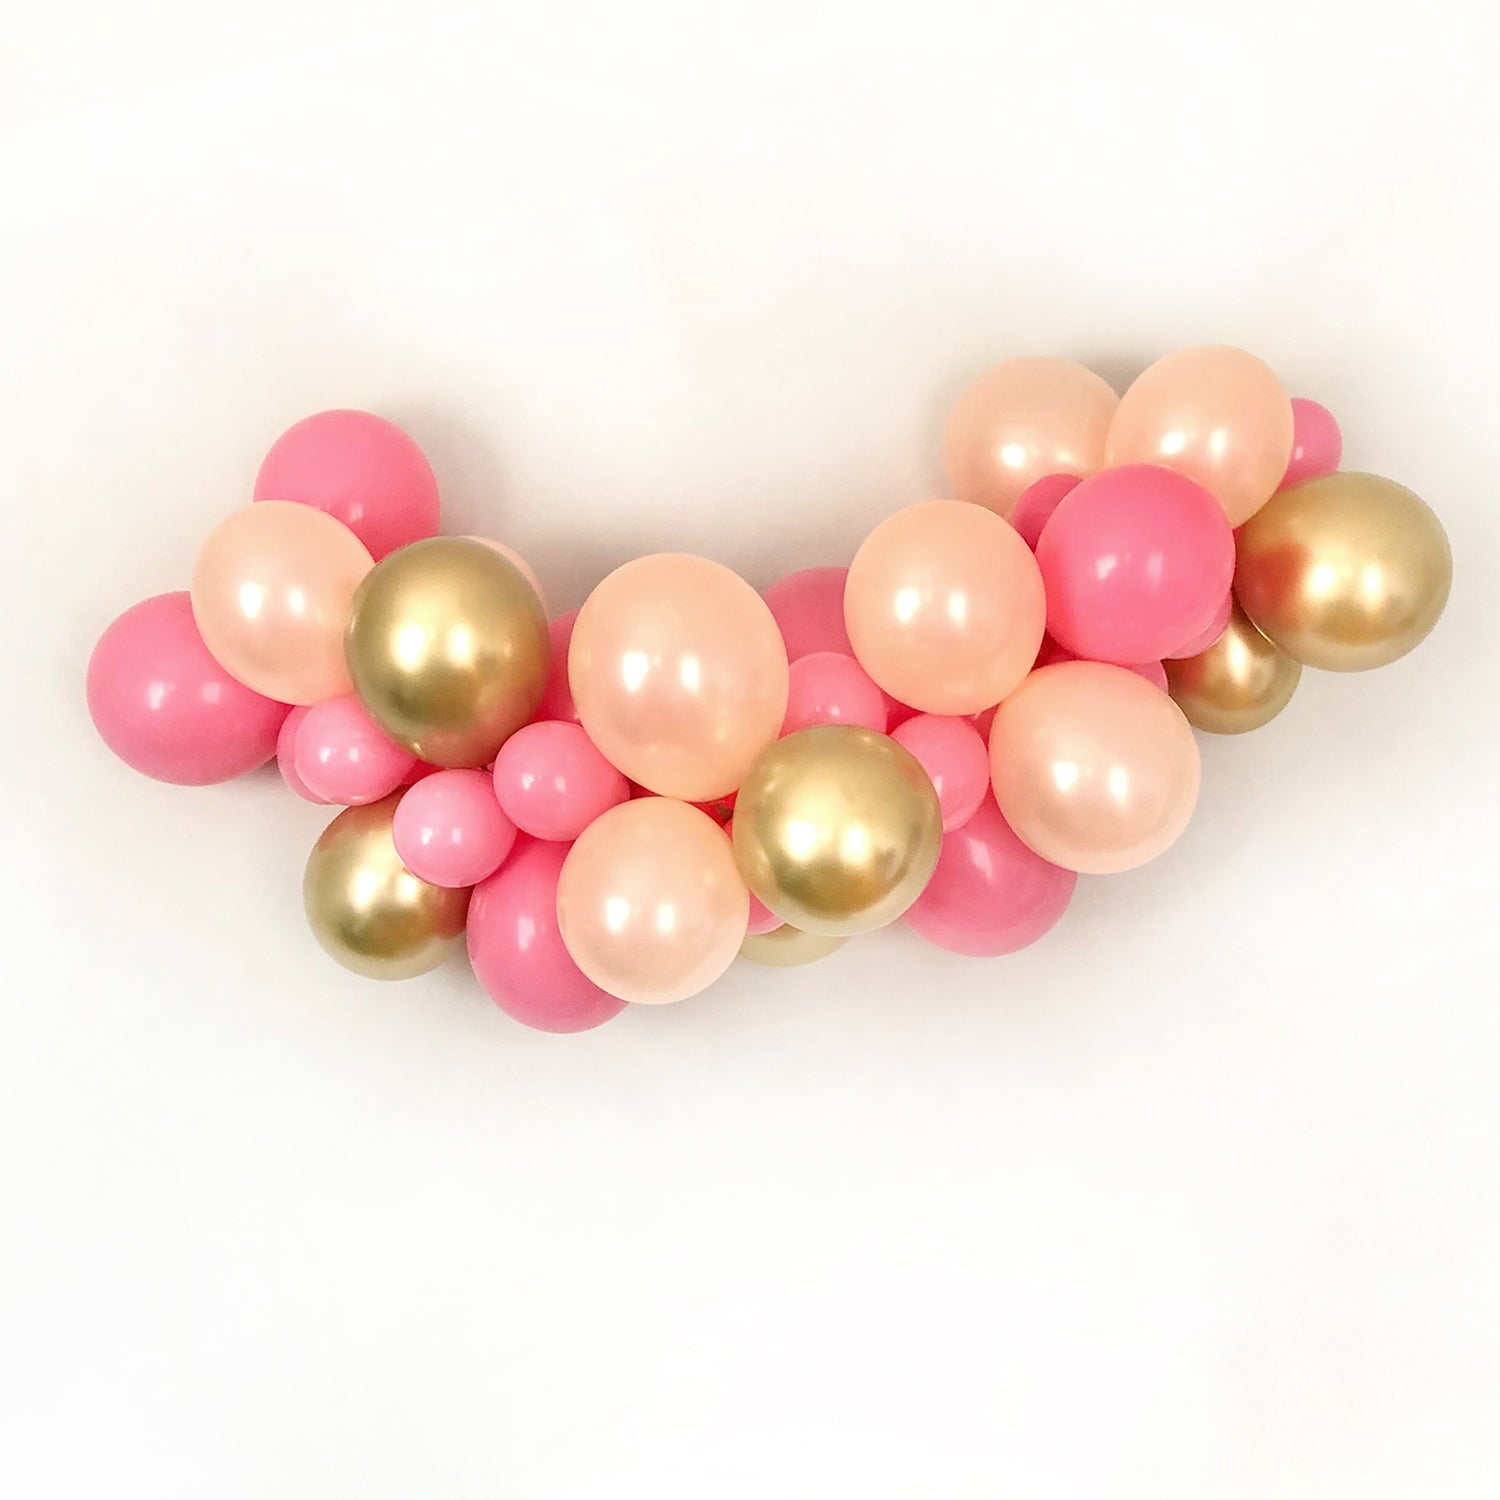 Rose and Gold Balloon Garland Instructions - DIY Balloon Garland - Pink and Gold Balloon Arch